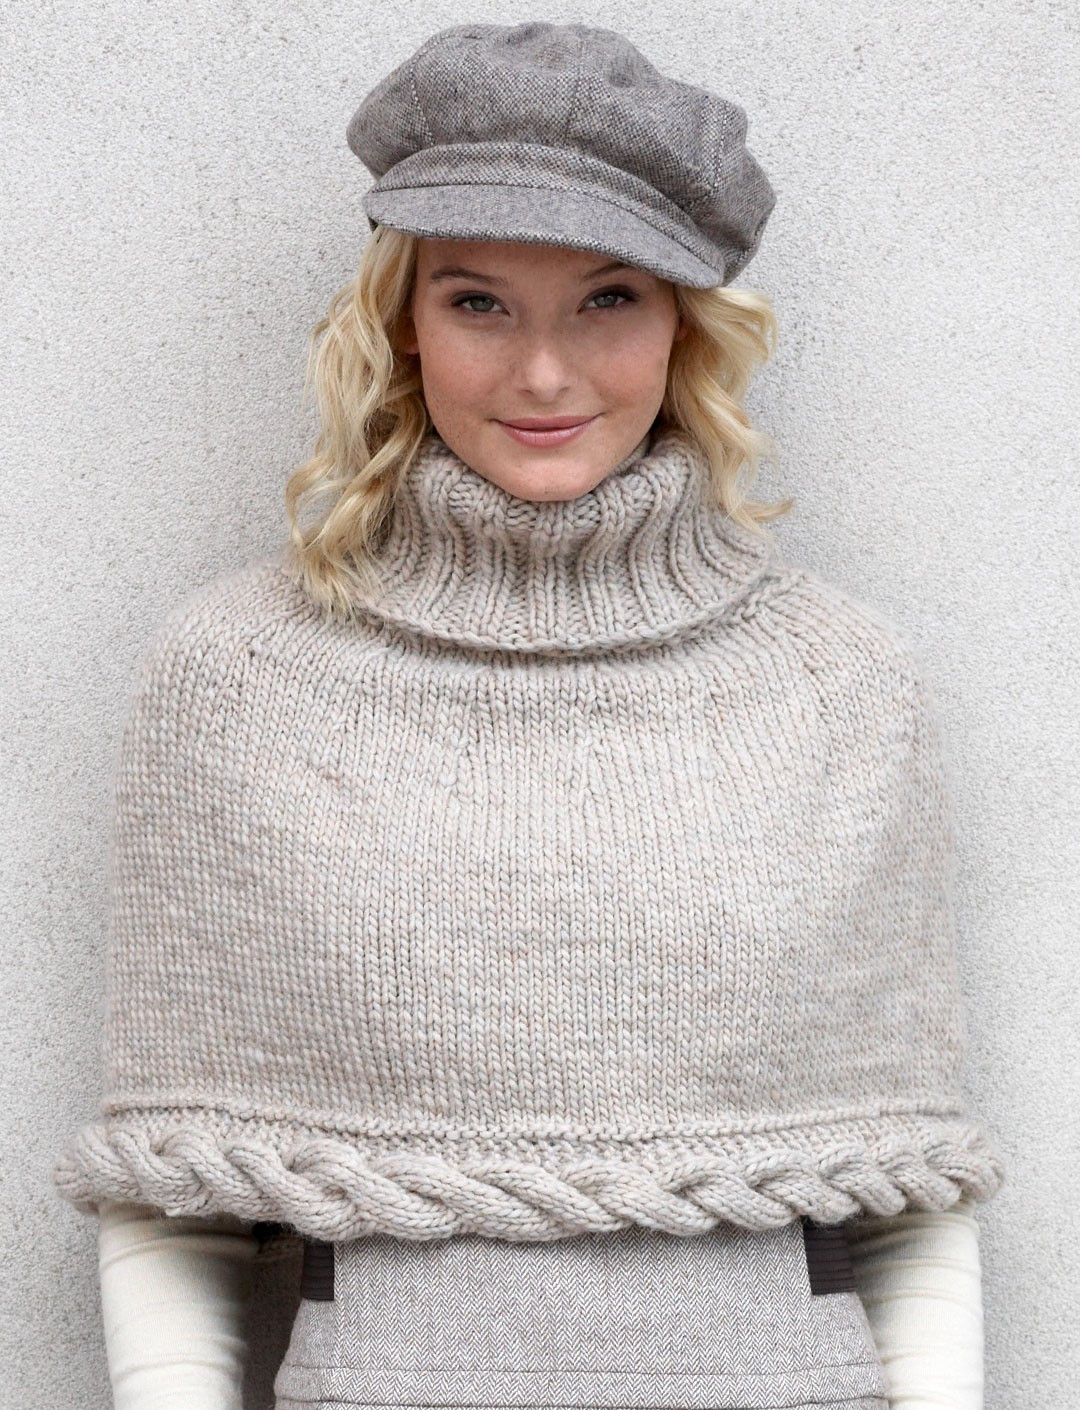 Best Of Cable Capelet In Patons Classic Wool Roving Patons Roving Wool Of Innovative 36 Pictures Patons Roving Wool